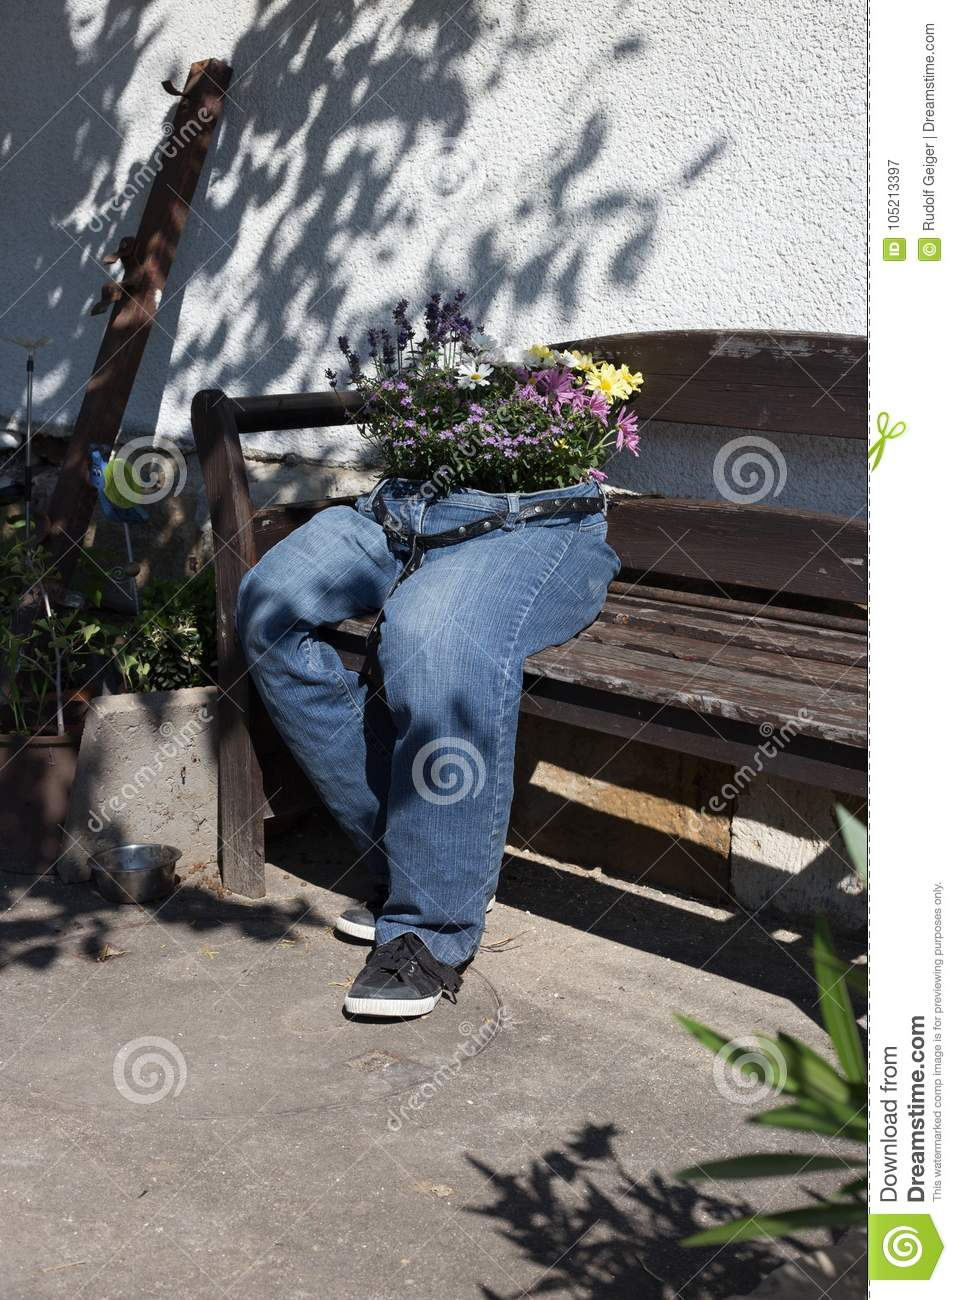 Cut Off Jeans Decorated With Flowers Sitting On A Garden Bench A